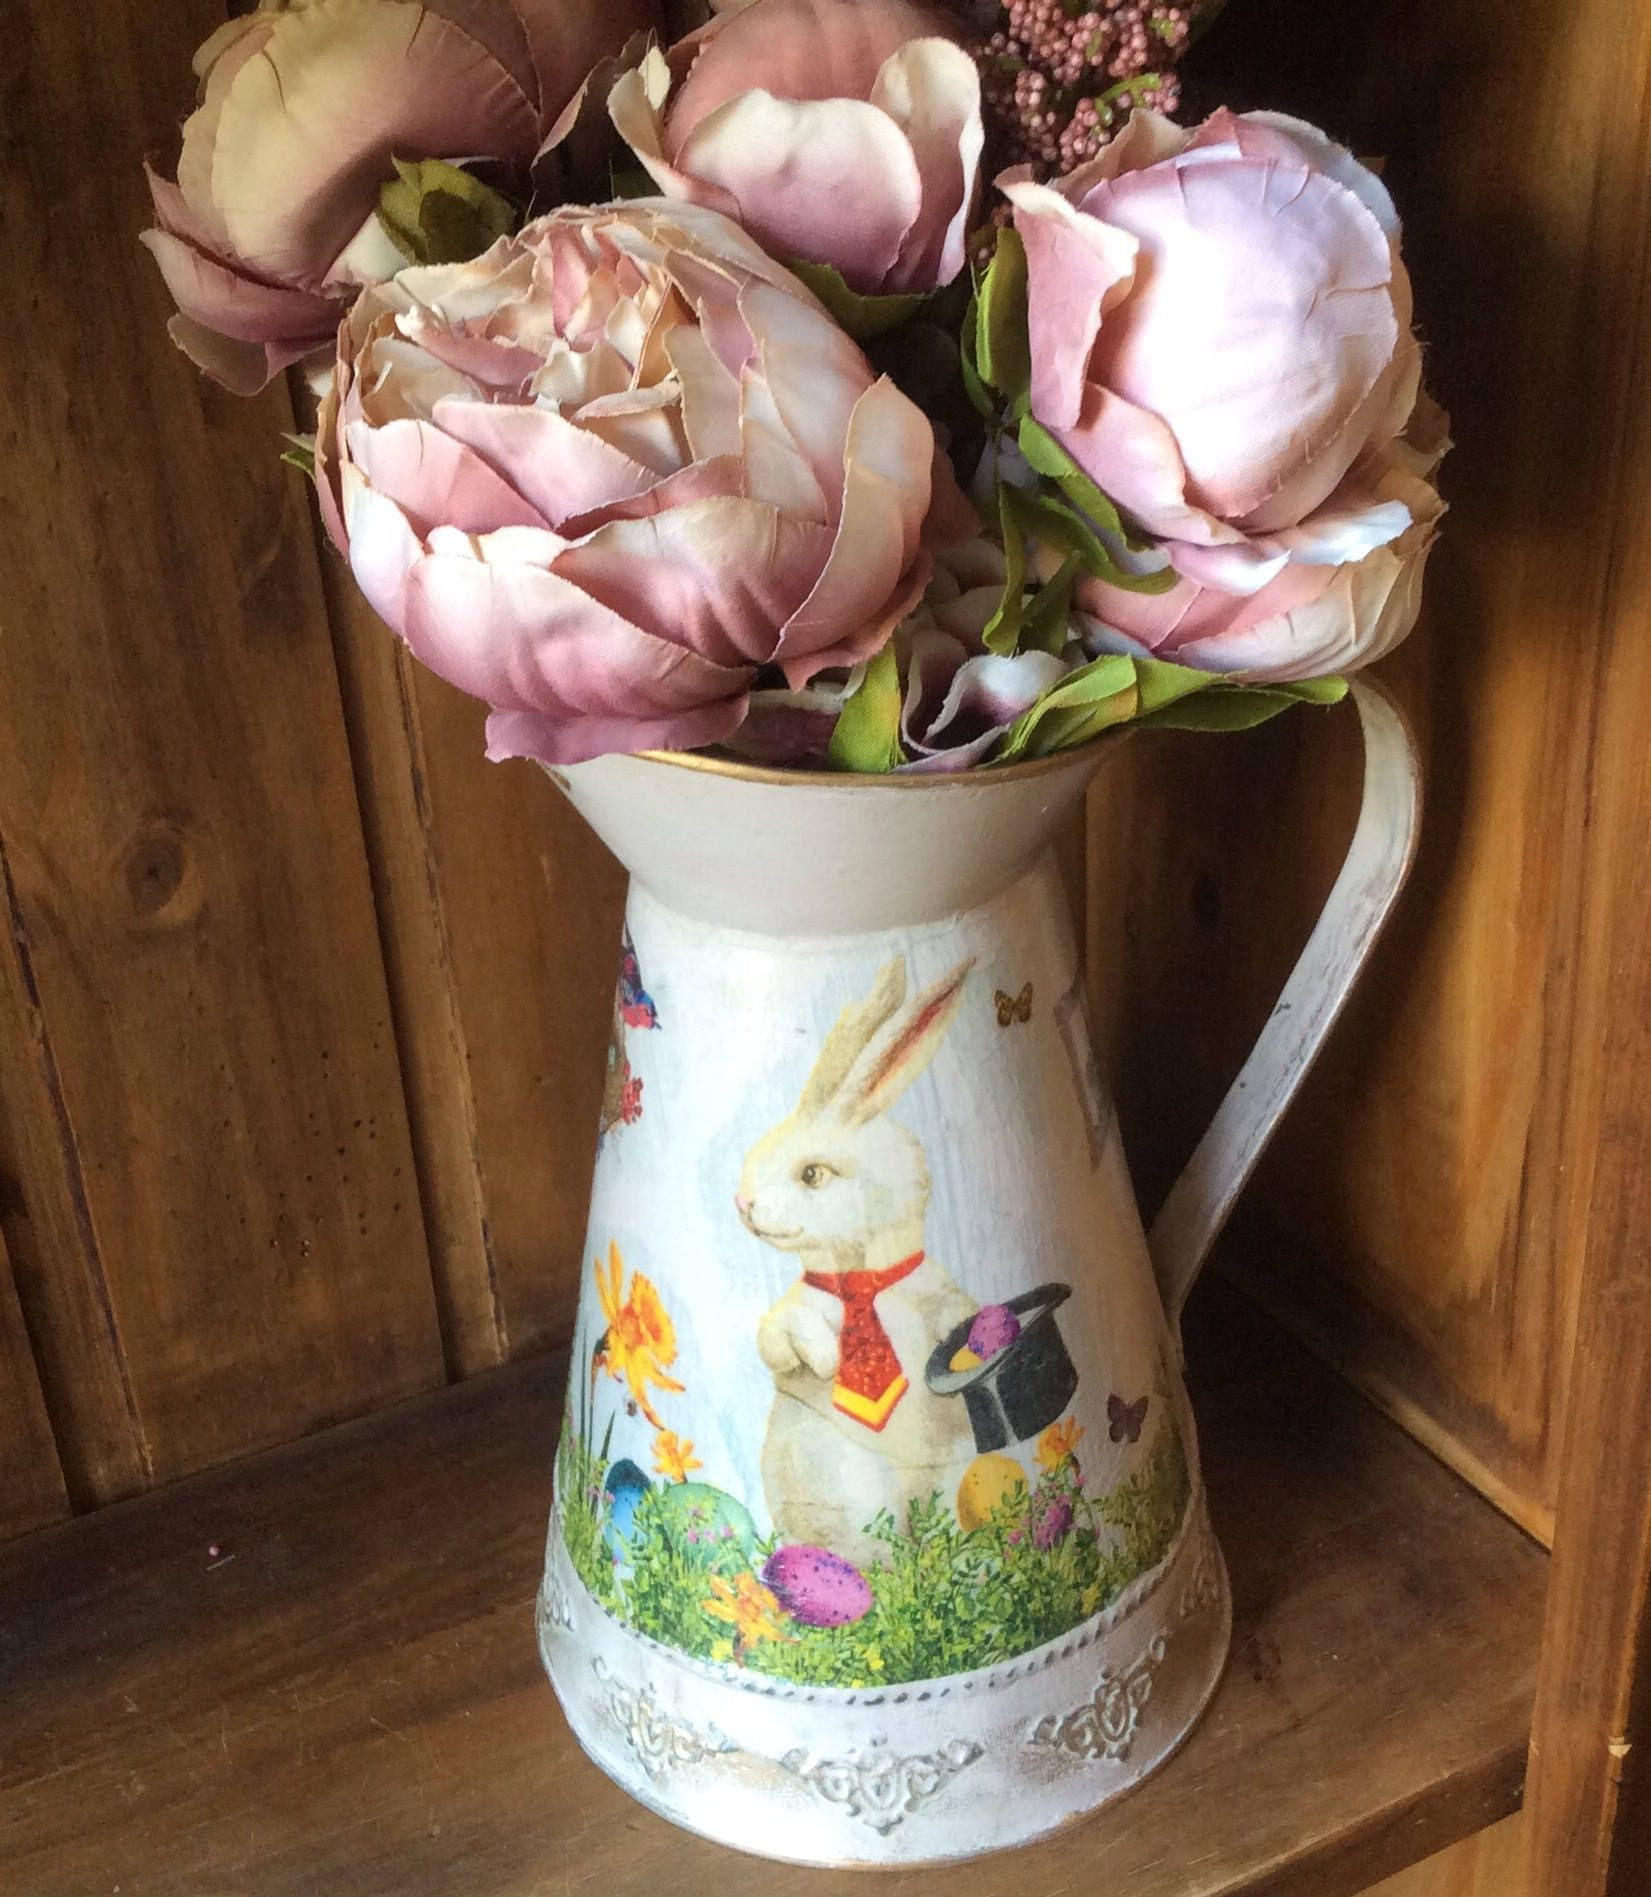 Galvanised Flower Vase Of Galvanized Metal Pitcher Jug Hand Painted with White Rabbit within Galvanized Metal Pitcher Jug Hand Painted with White Rabbit Decoupage Decorative Vase Home Decor Perfect Gift